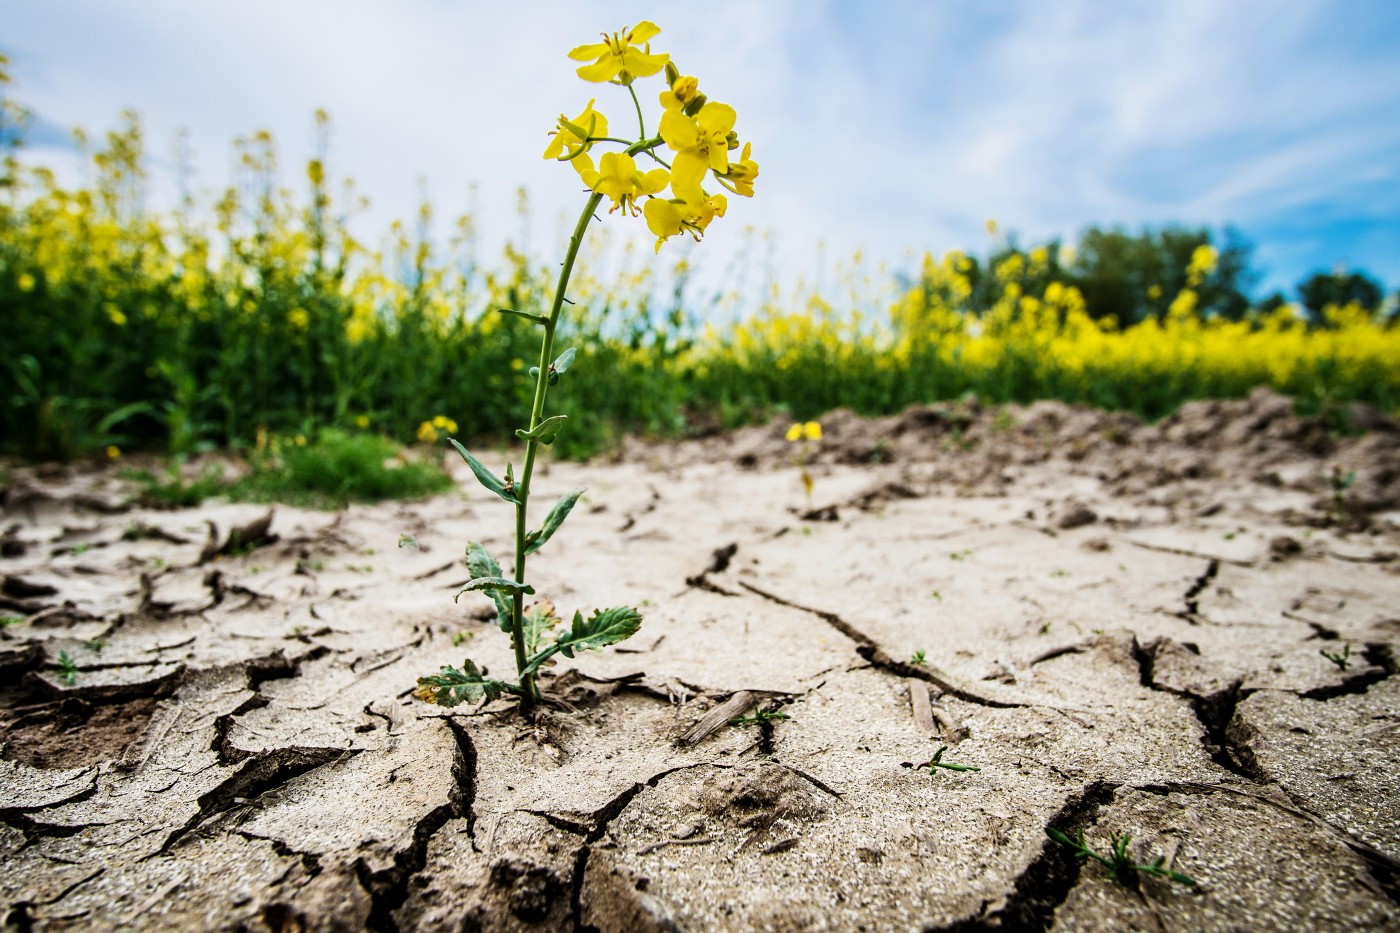 https://tickertapecdn.tdameritrade.com/assets/images/pages/md/Flower blooming from dried-up earth: Growing water trade investment opportunities